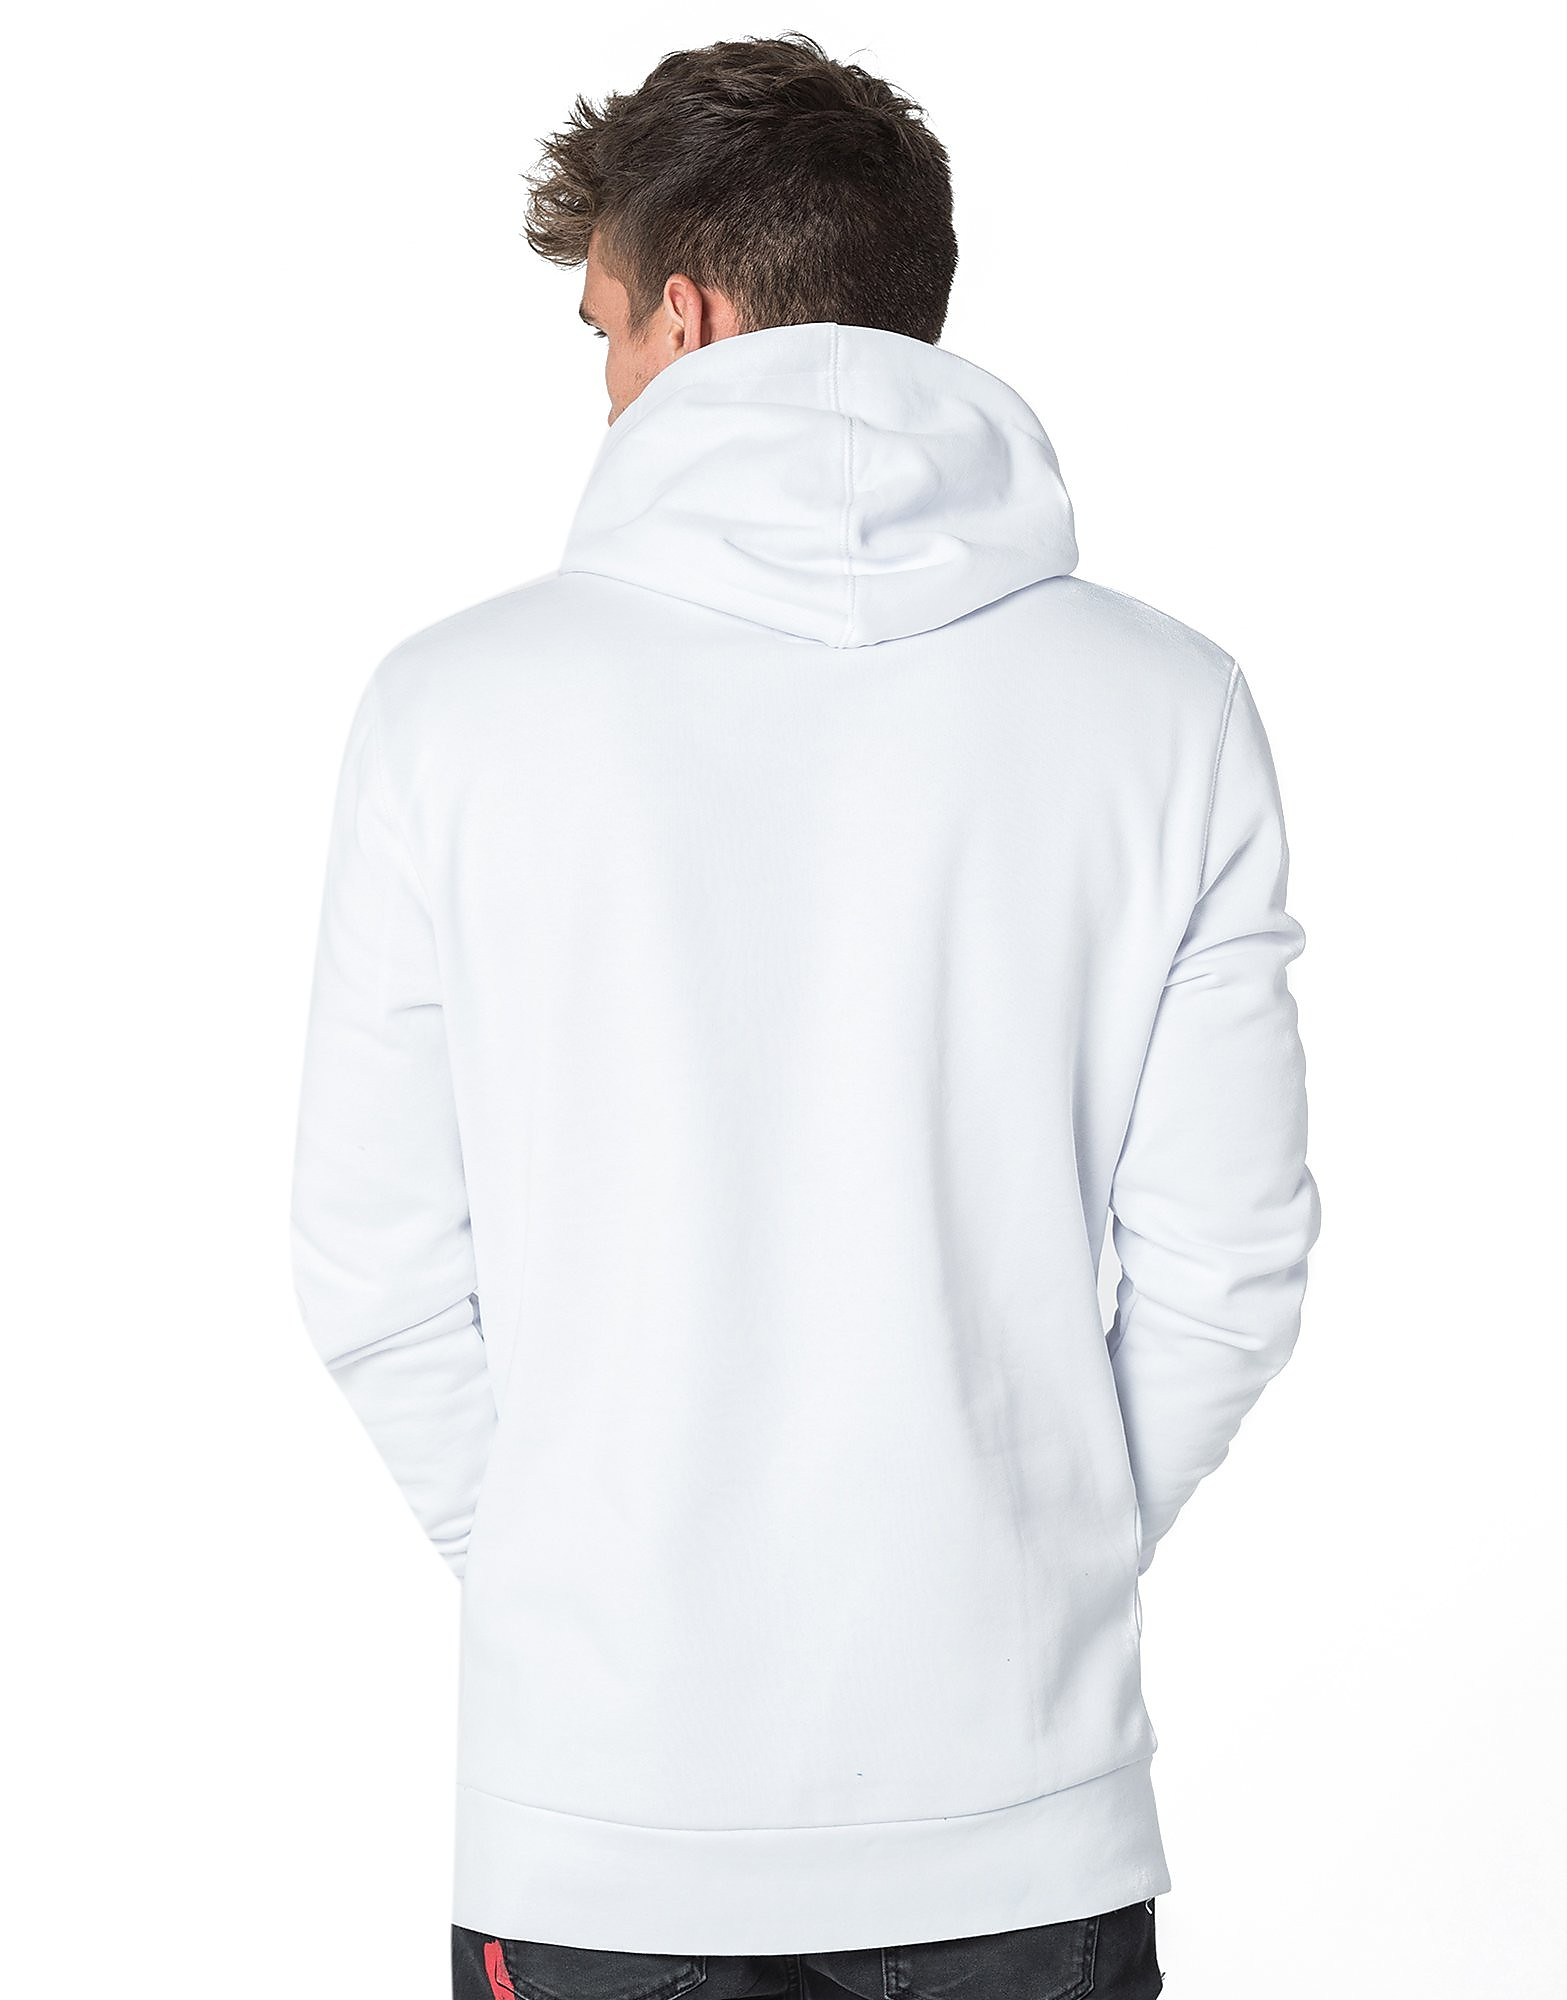 11 Degrees Core Fleece Overhead Hoodie